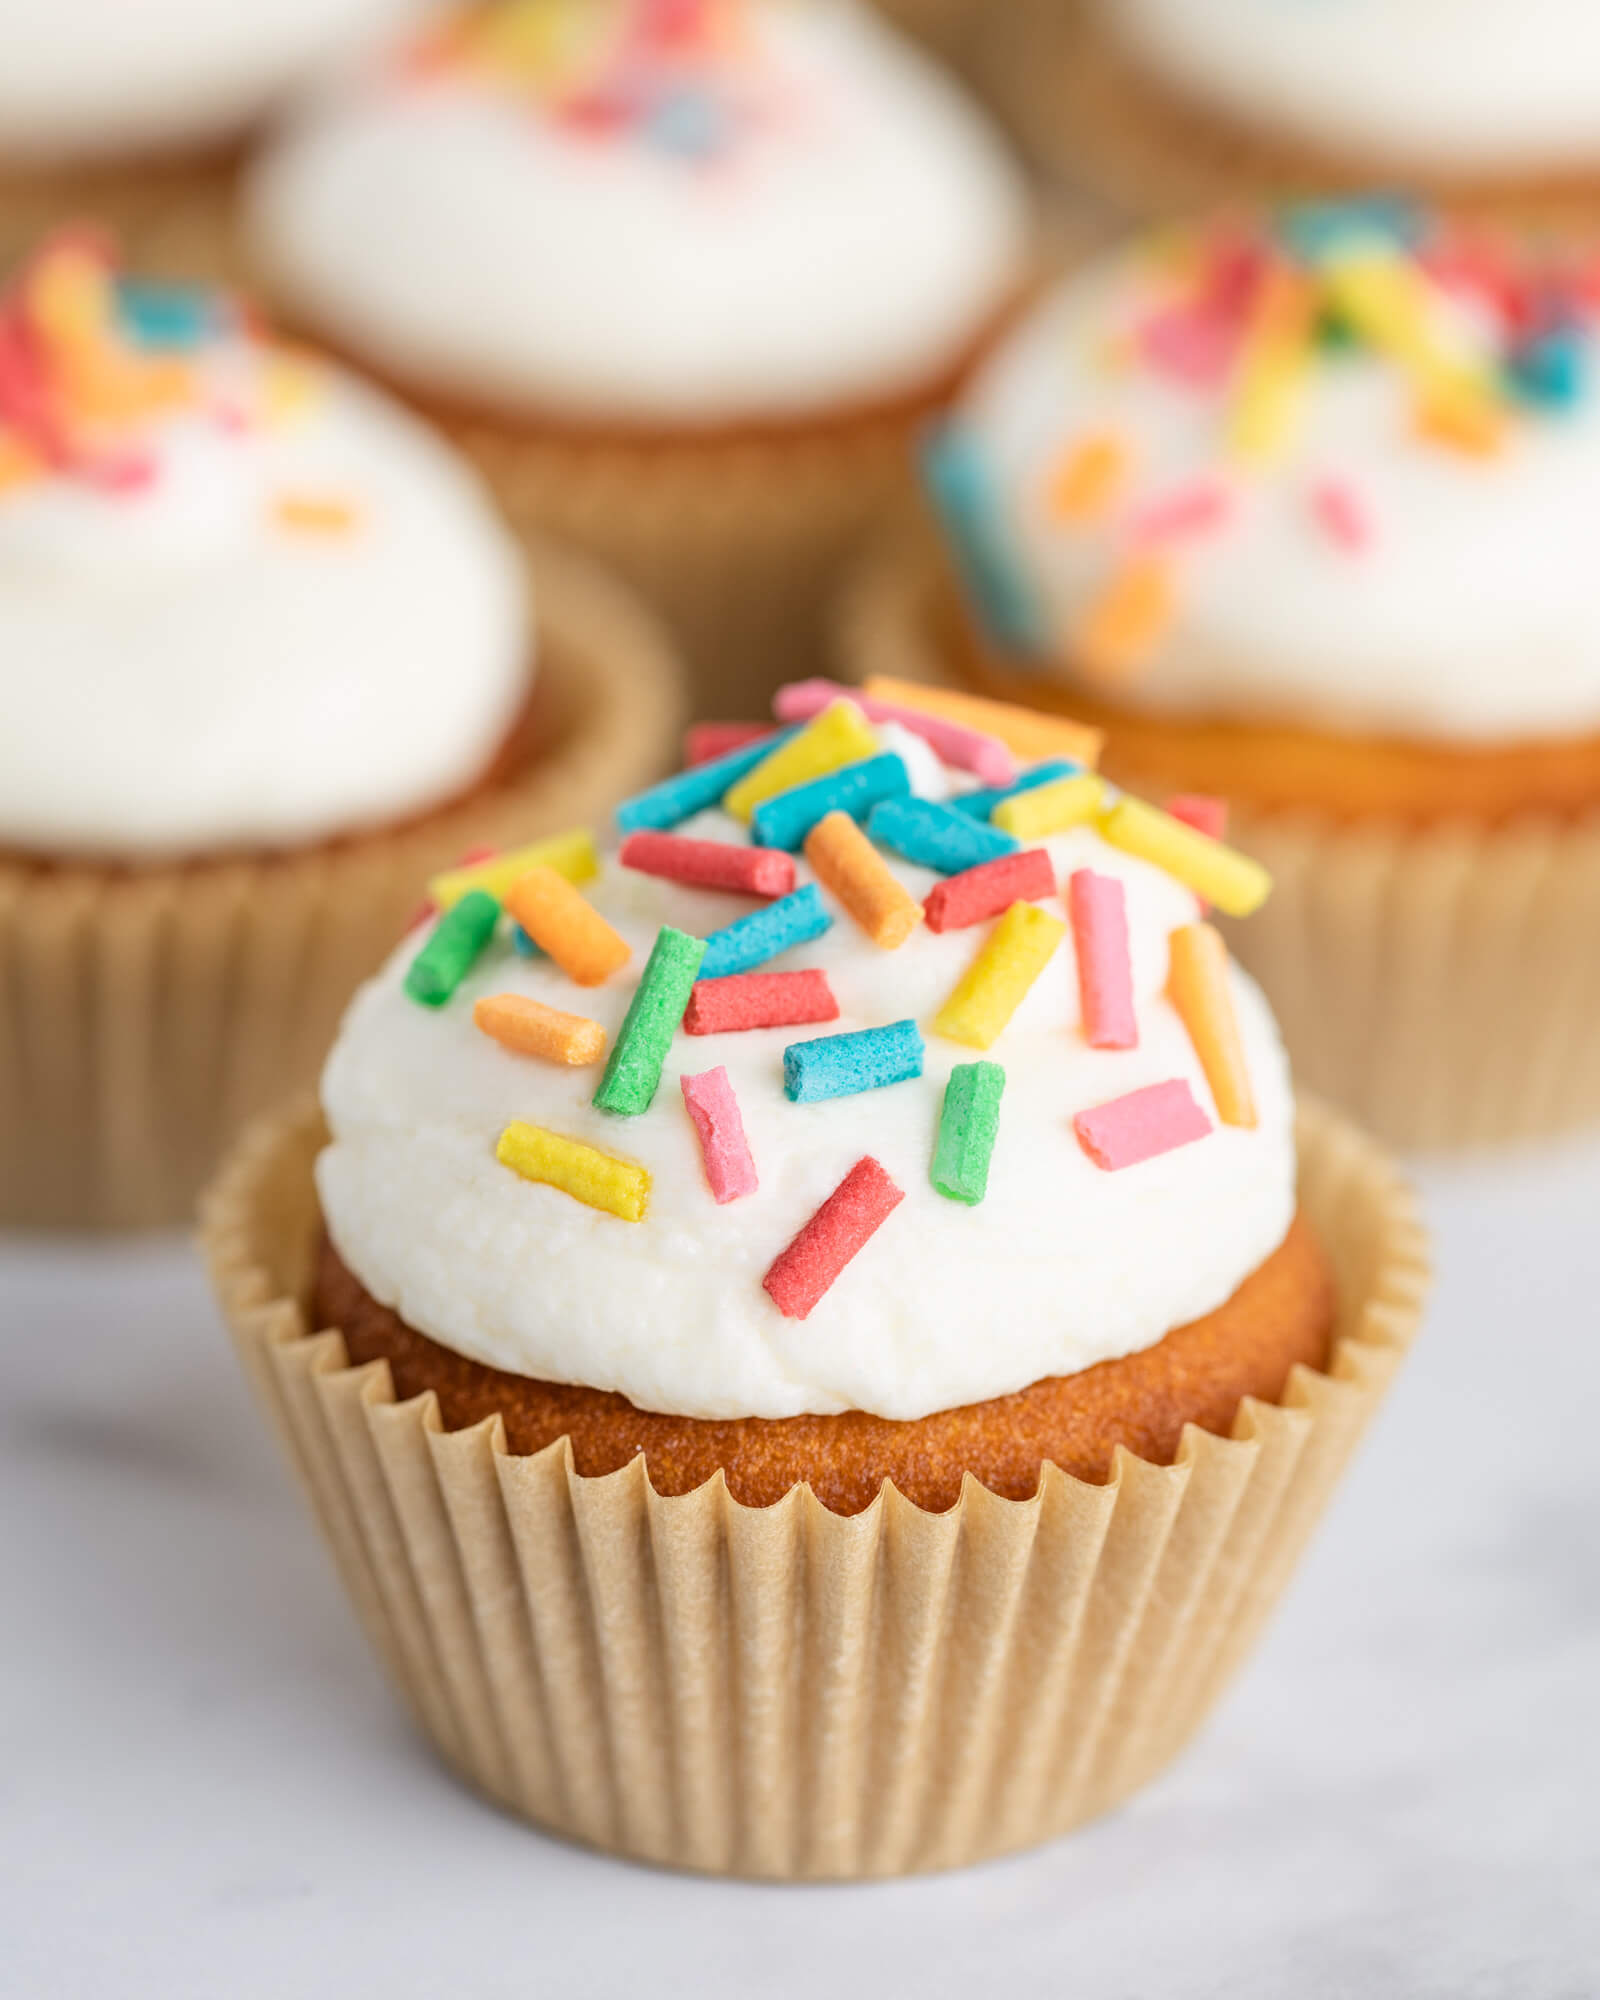 Keto Cupcakes with keto frosting and homemade sugar free sprinkles